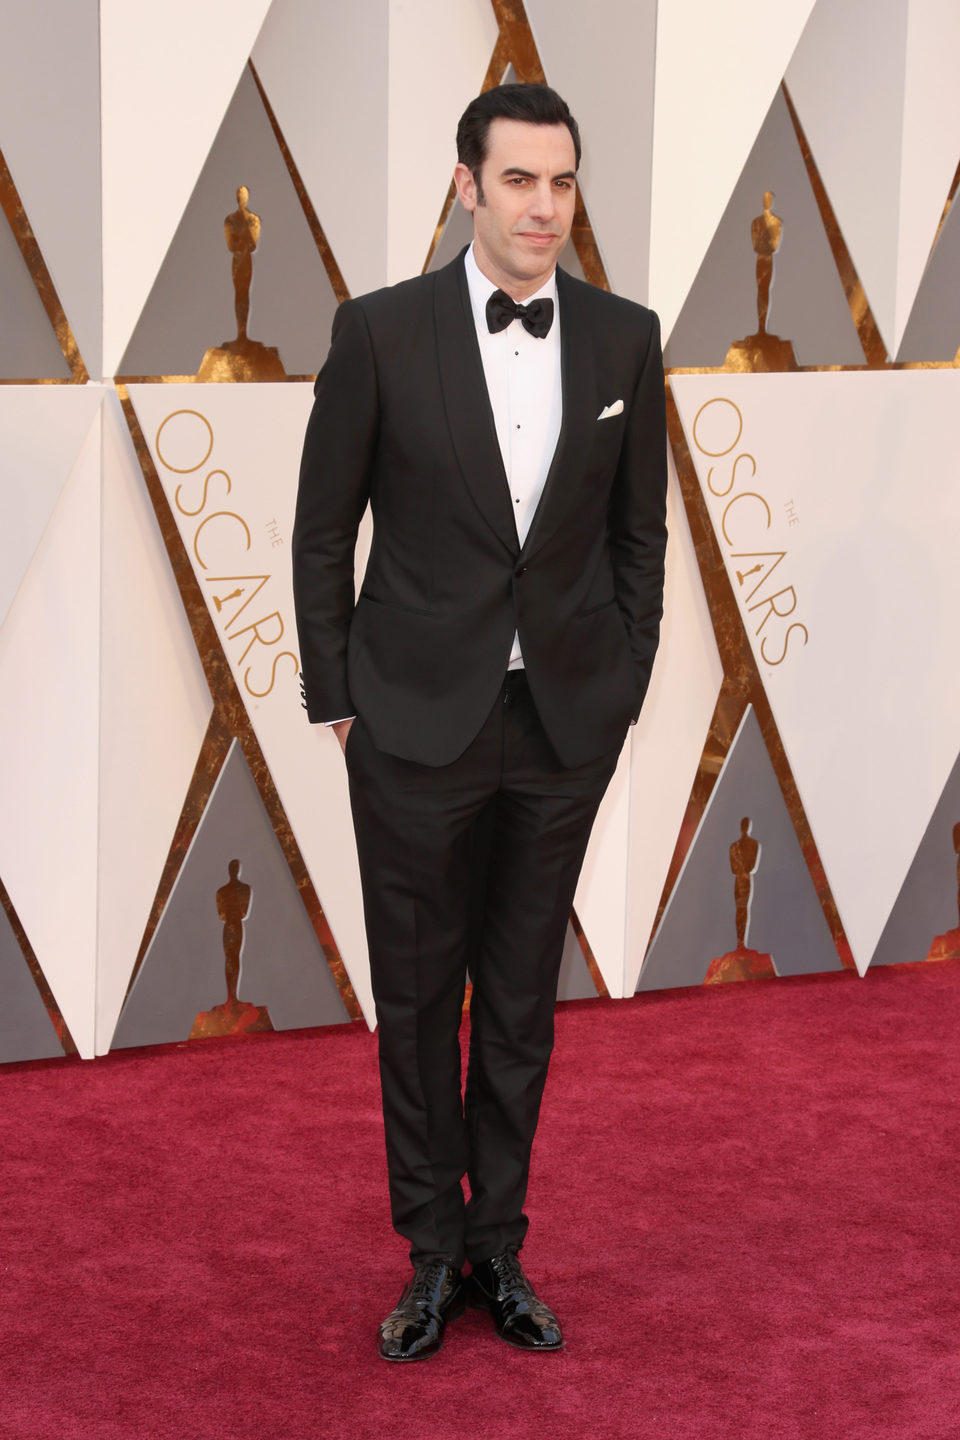 Sacha Baron Cohen at the Oscars 2016 red carpet